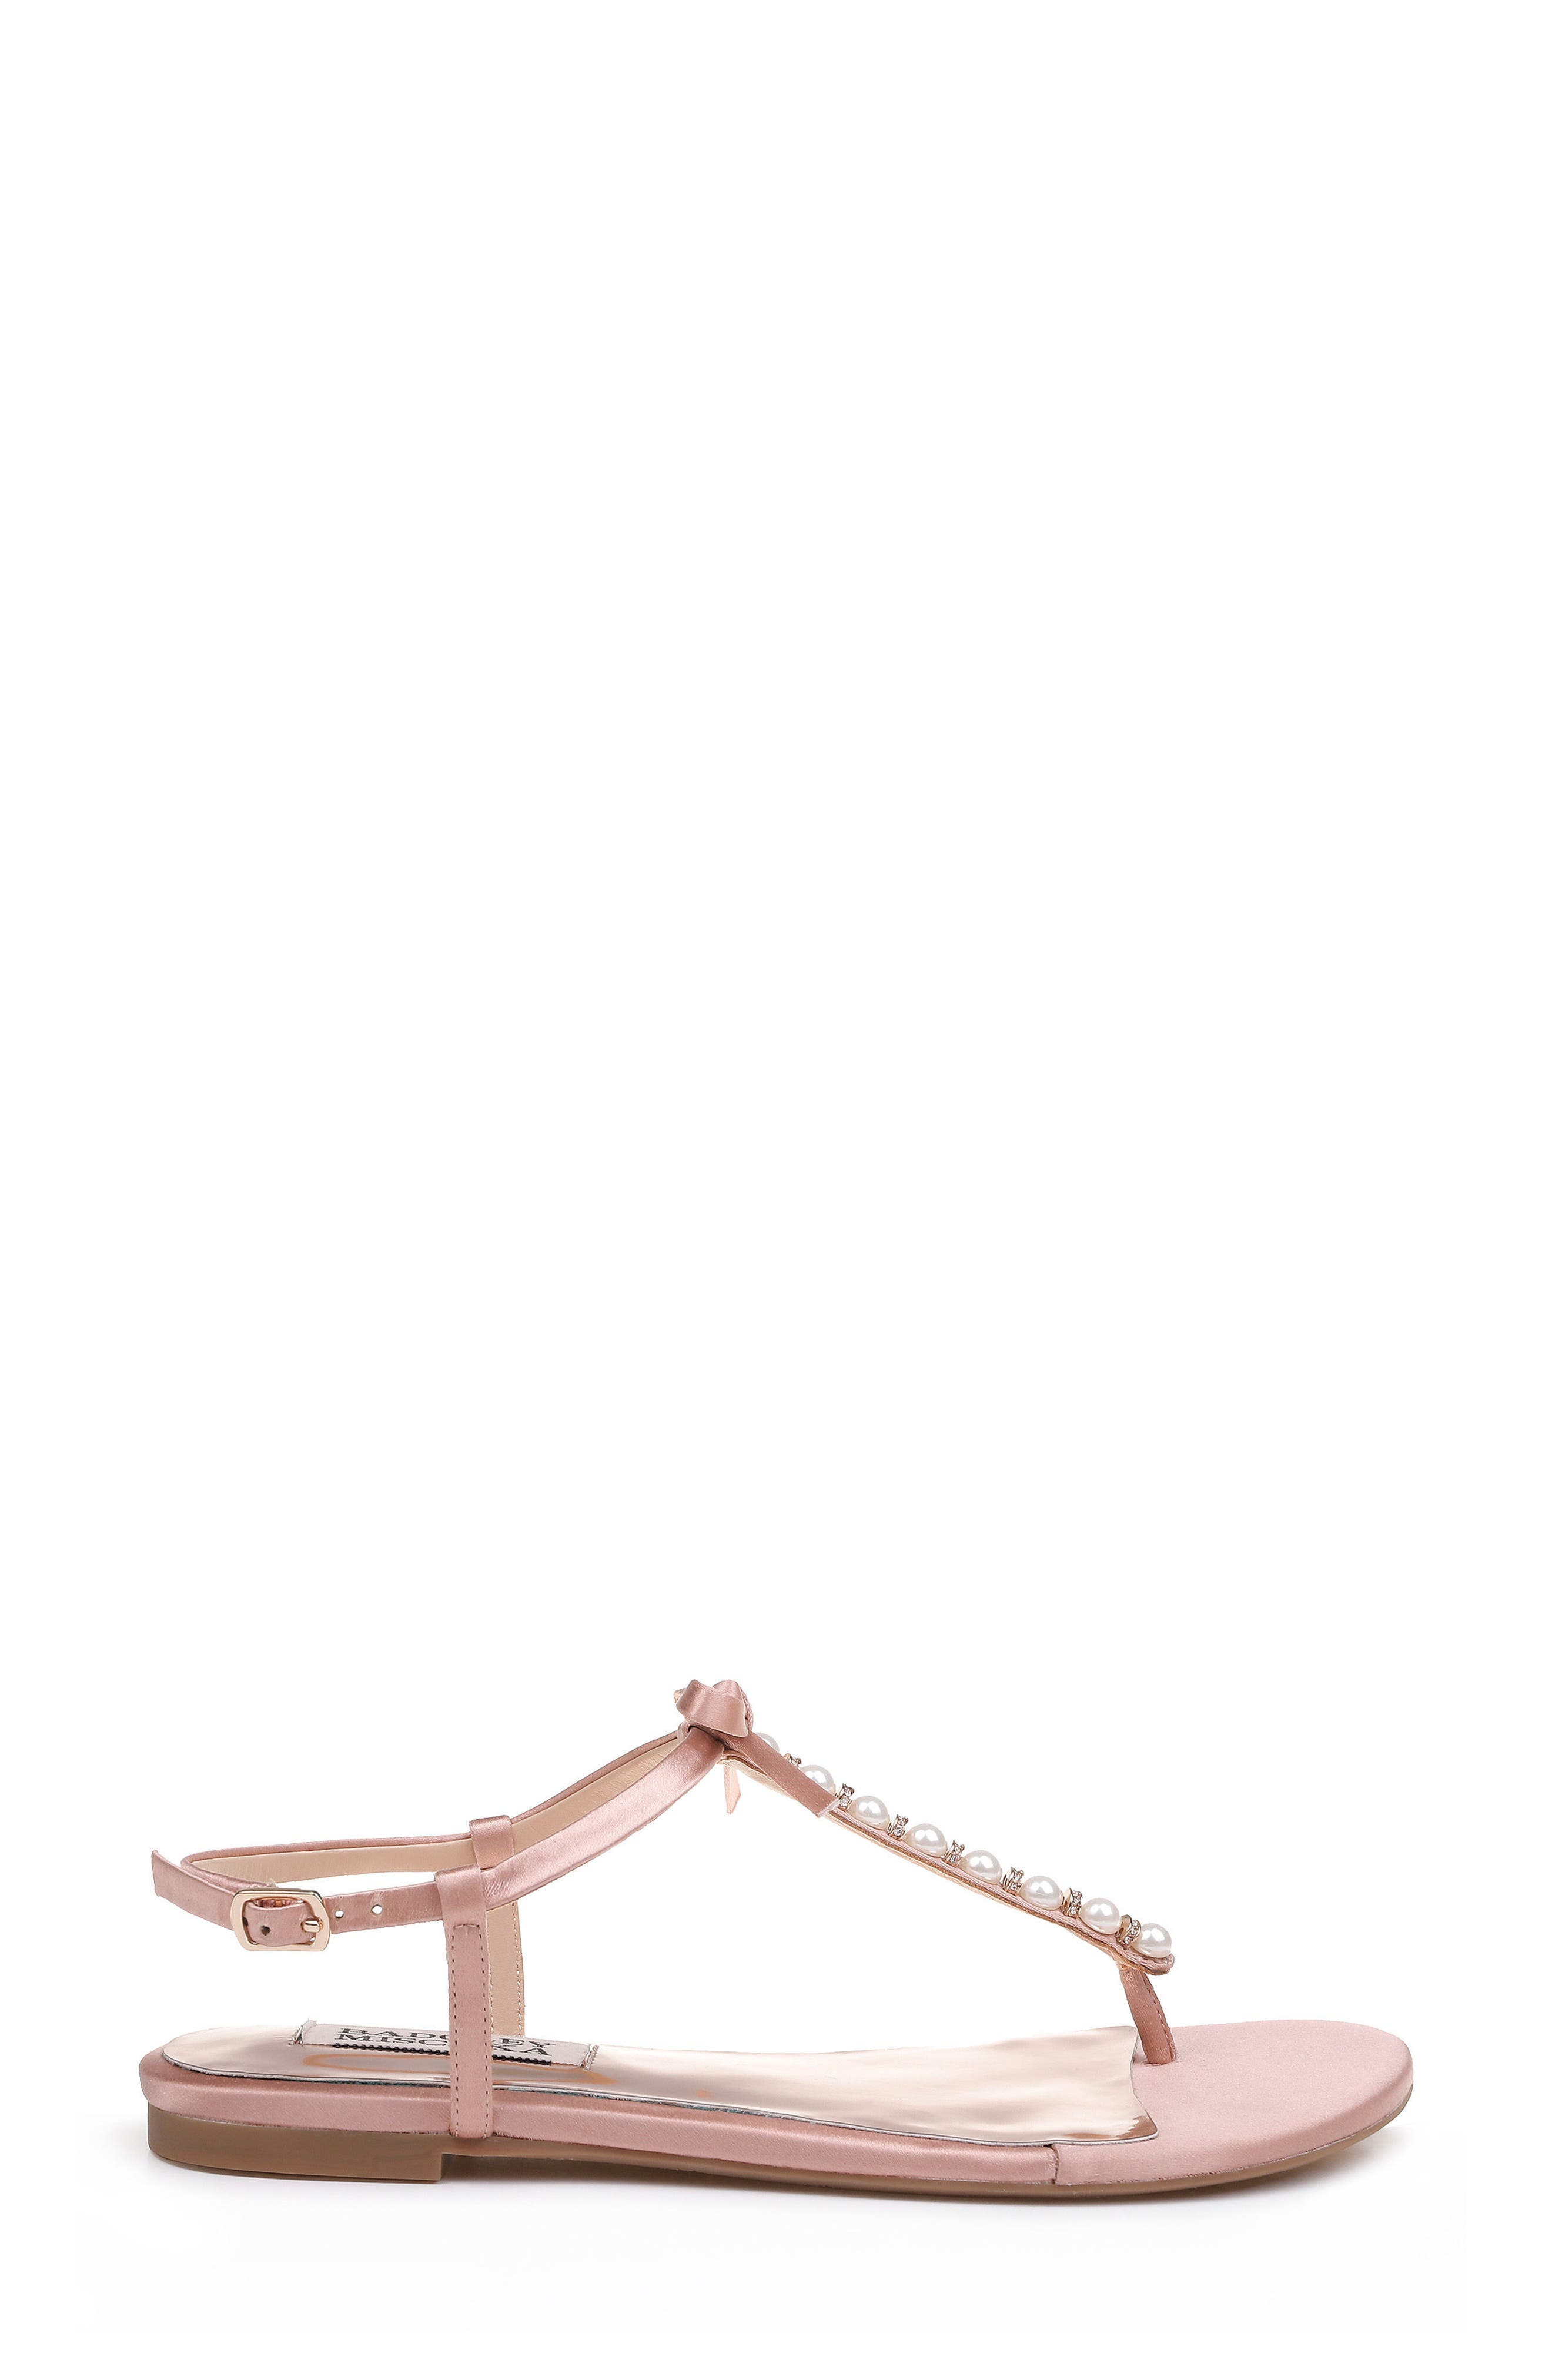 Honey Embellished Sandal,                             Alternate thumbnail 3, color,                             Dark Pink Satin